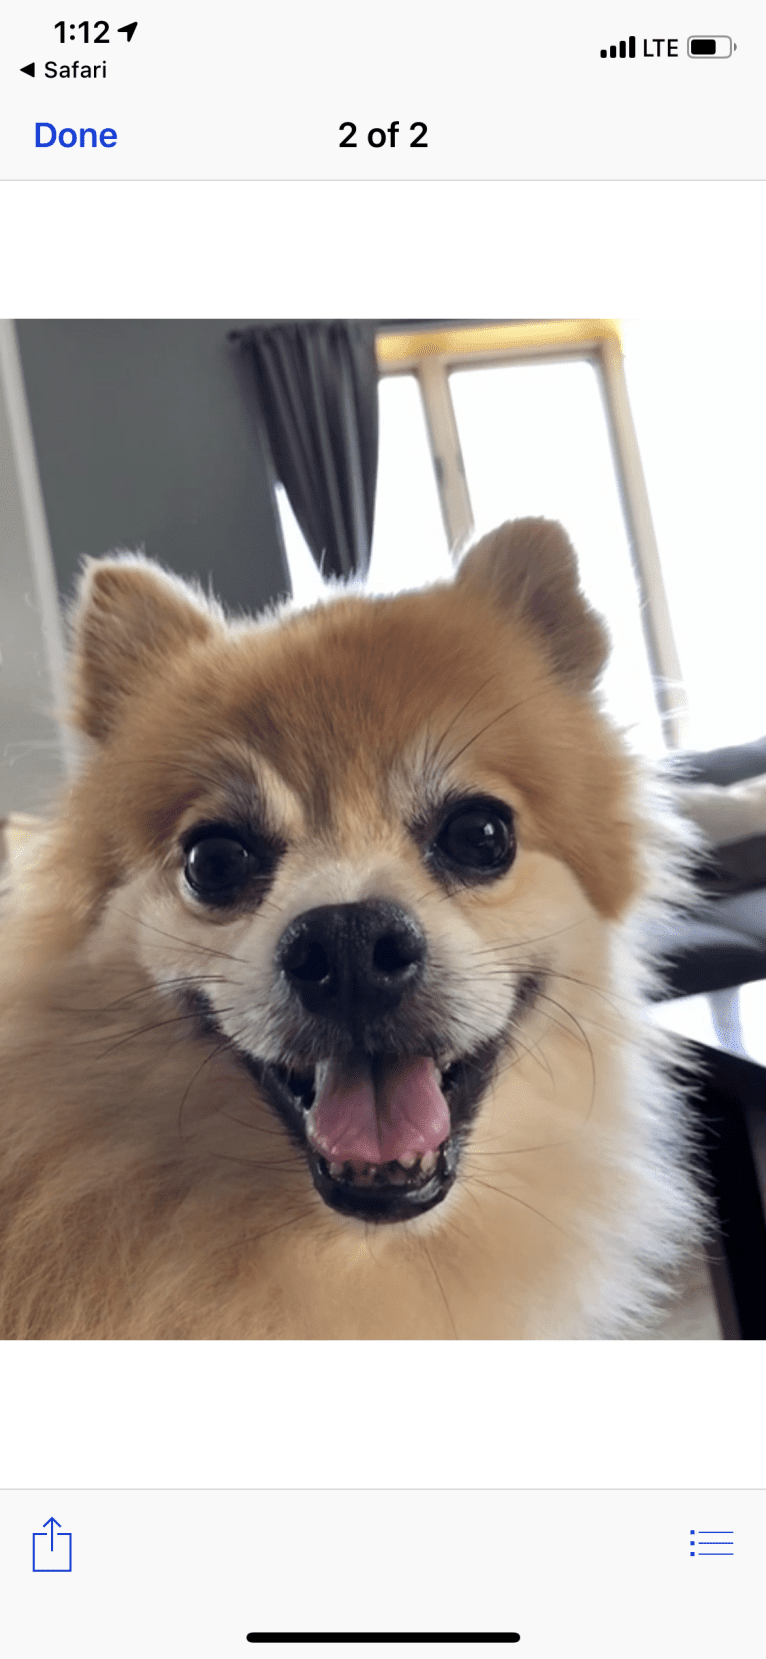 Photo of Rusty, a Pomeranian  in Chicago, Illinois, USA